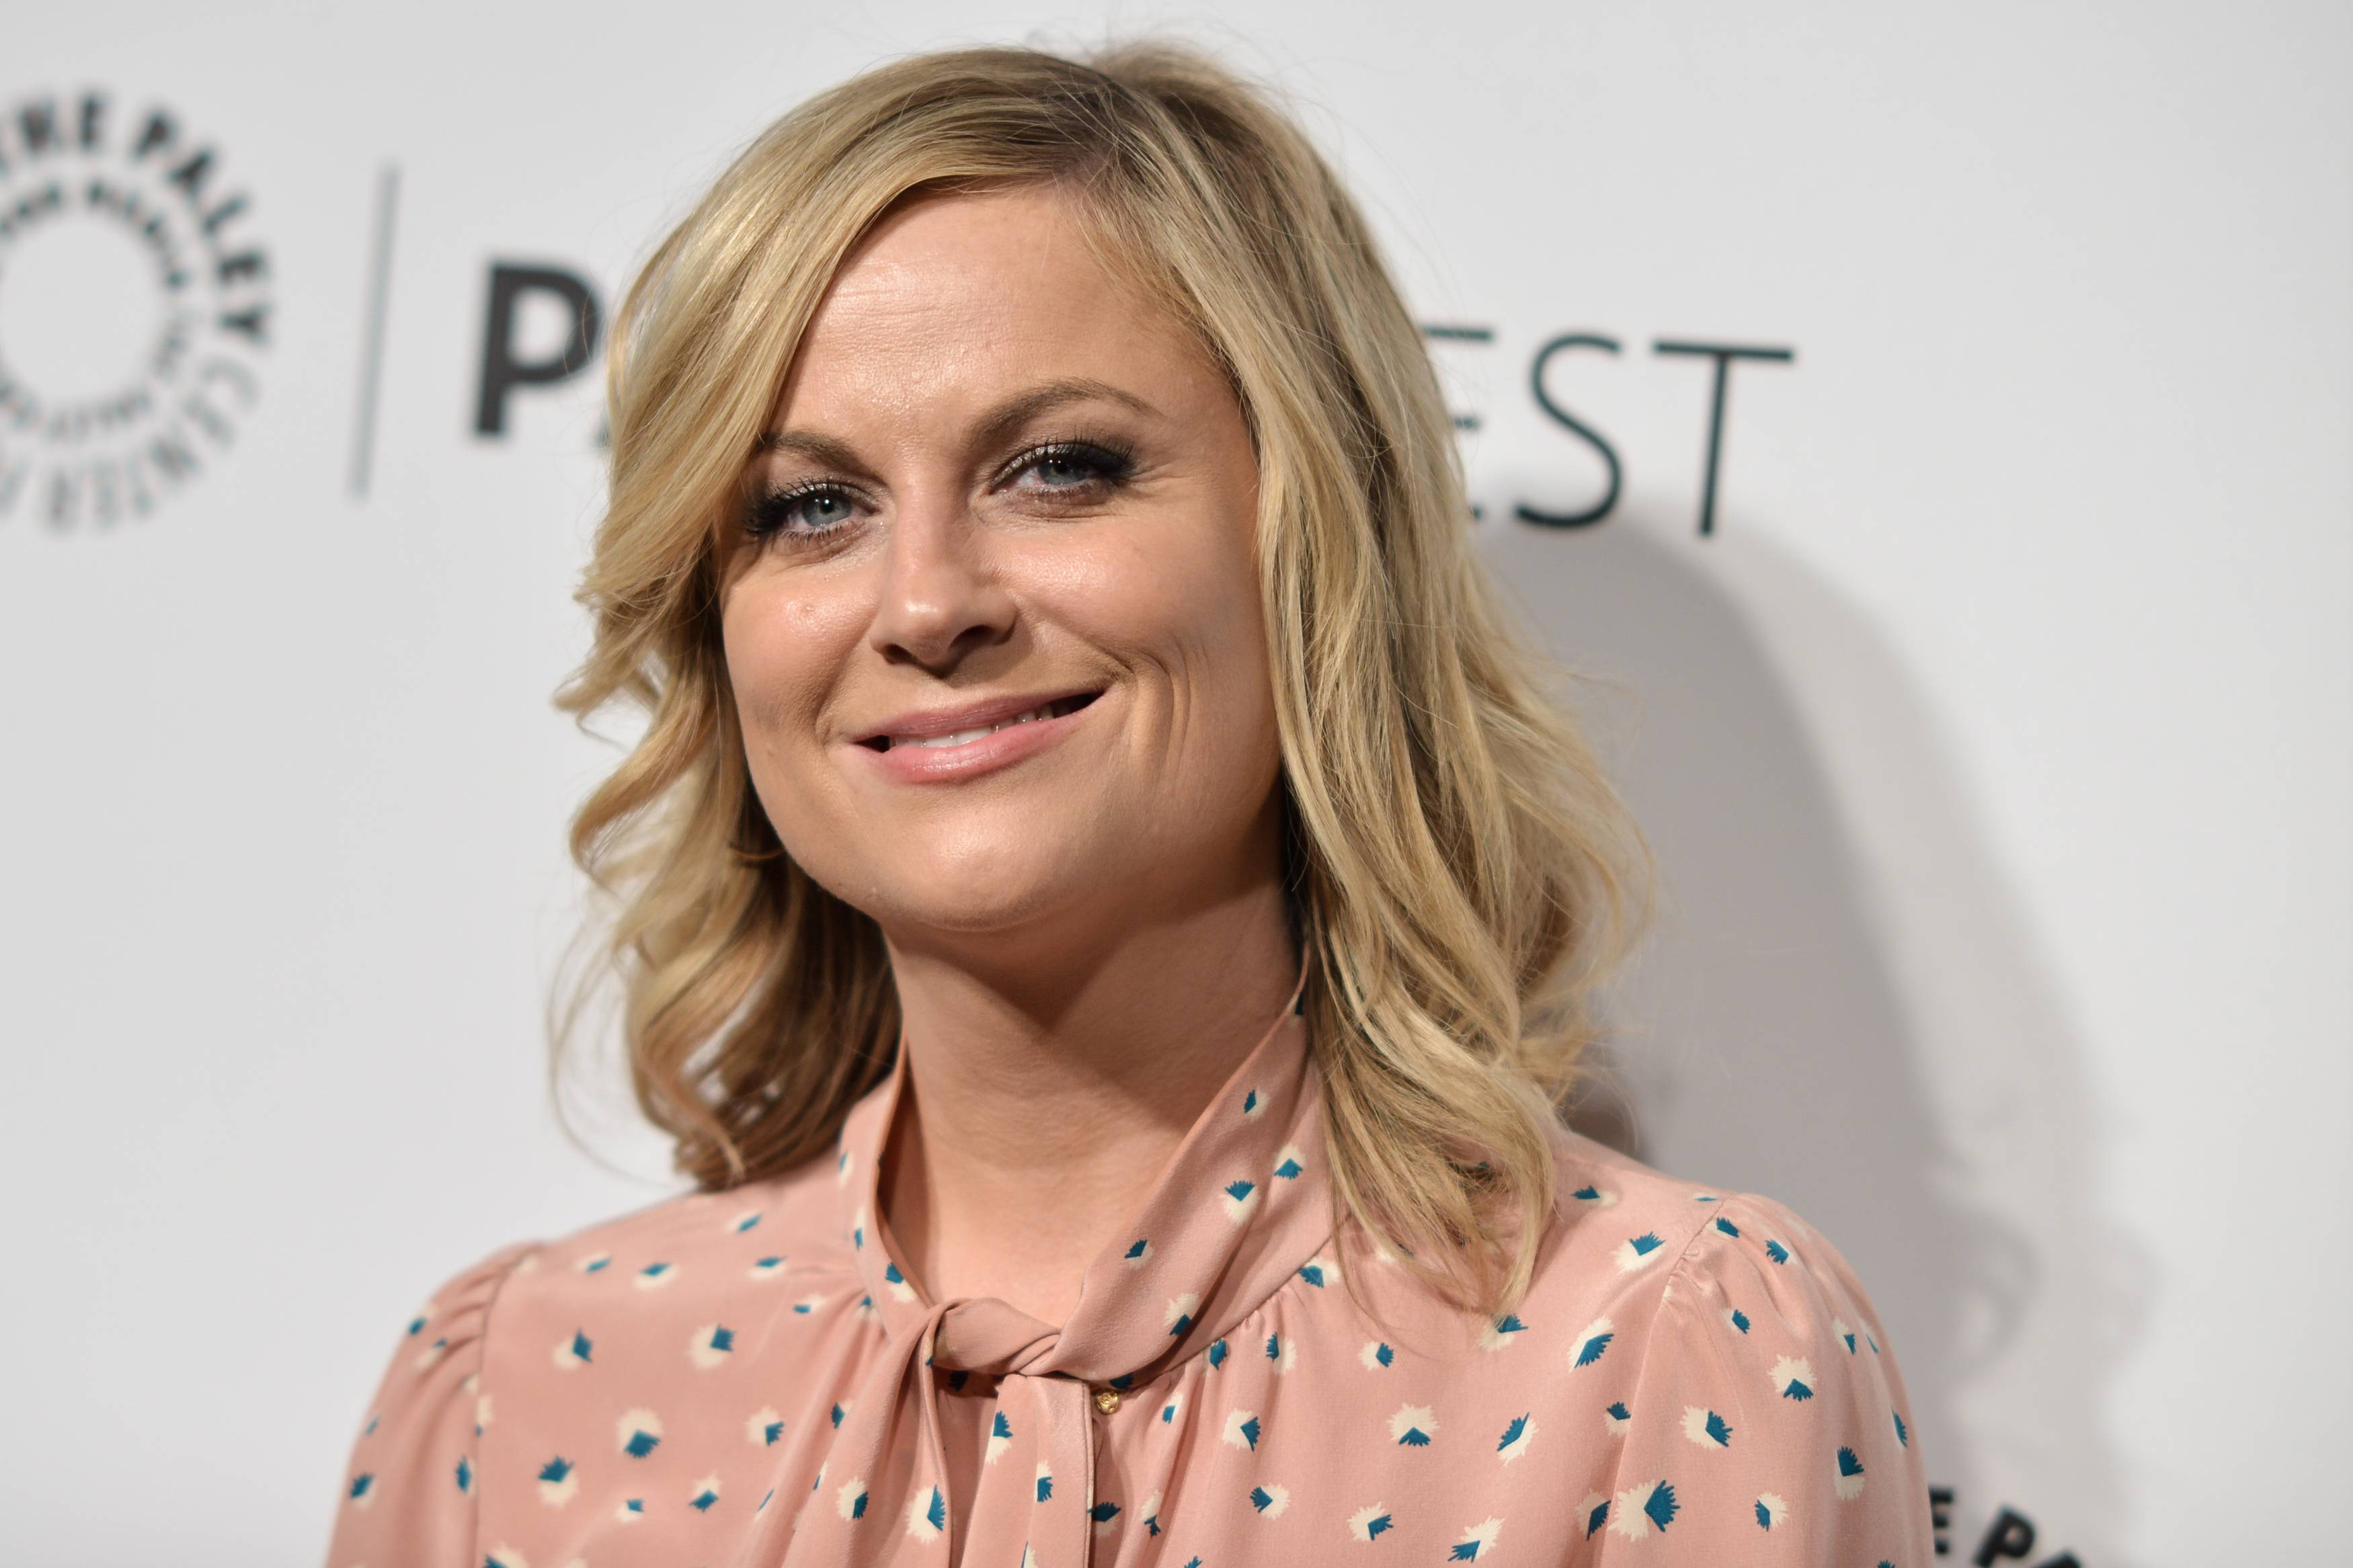 "This March 18, 2014 file photo shows actress Amy Poehler at PaleyFest 2014 ""Parks and Recreation,"" in Los Angeles. Poehler's brother Greg stars in ""Welcome to Sweden,"" debuting July 10, 2014, on the same network. Poehler's brother Greg also created, wrote and serves as executive producer of the show based on his life which was shot mainly in Sweden."